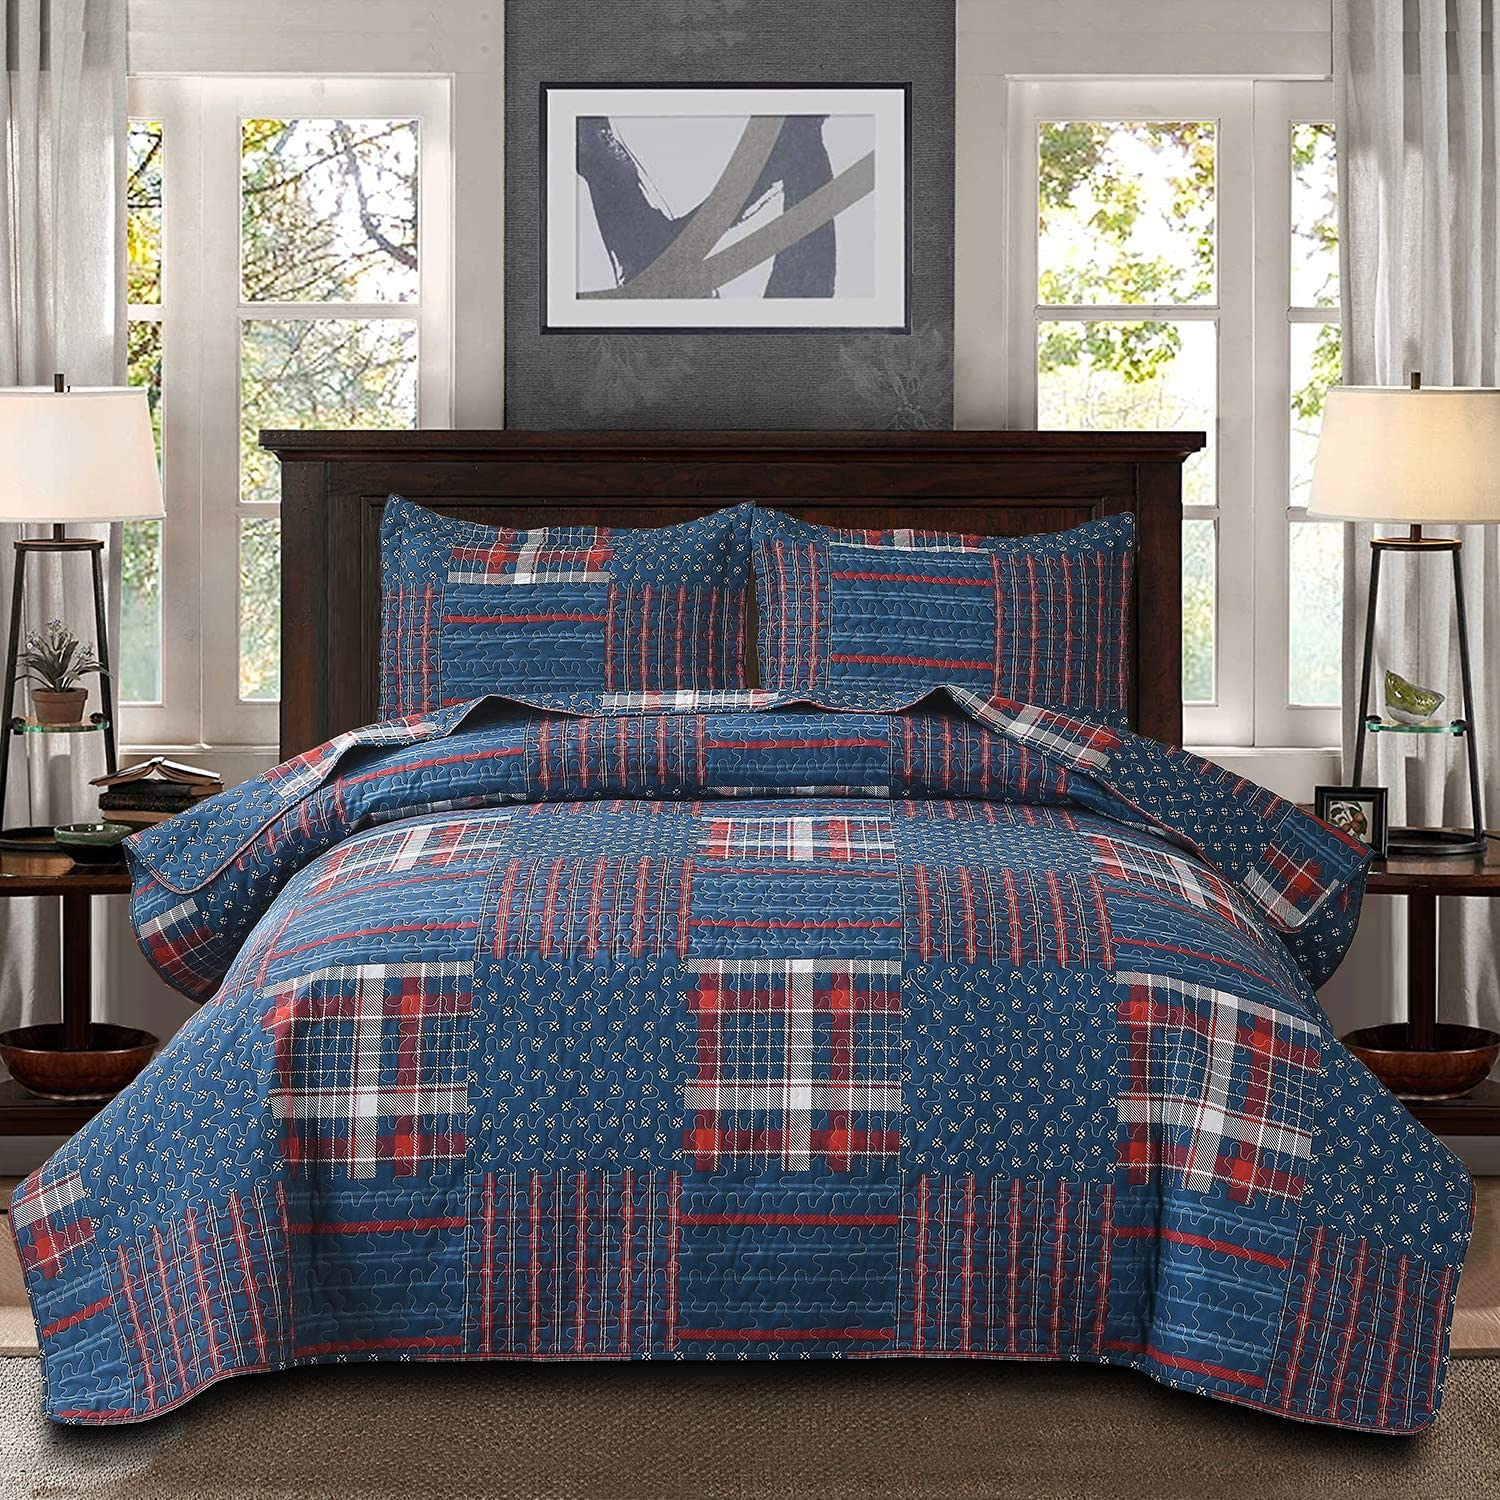 Buy Plaid Quilt Set Bedding Queen Full Size Red Black Plaid Quilt Lightweight Stripe Plaid Bedspreads Home Quilt Plaid Coverlet Reversible Bedspread Coverlet Set Mens Bedspread Set Soft Microfiber Quilt Online In Turkey